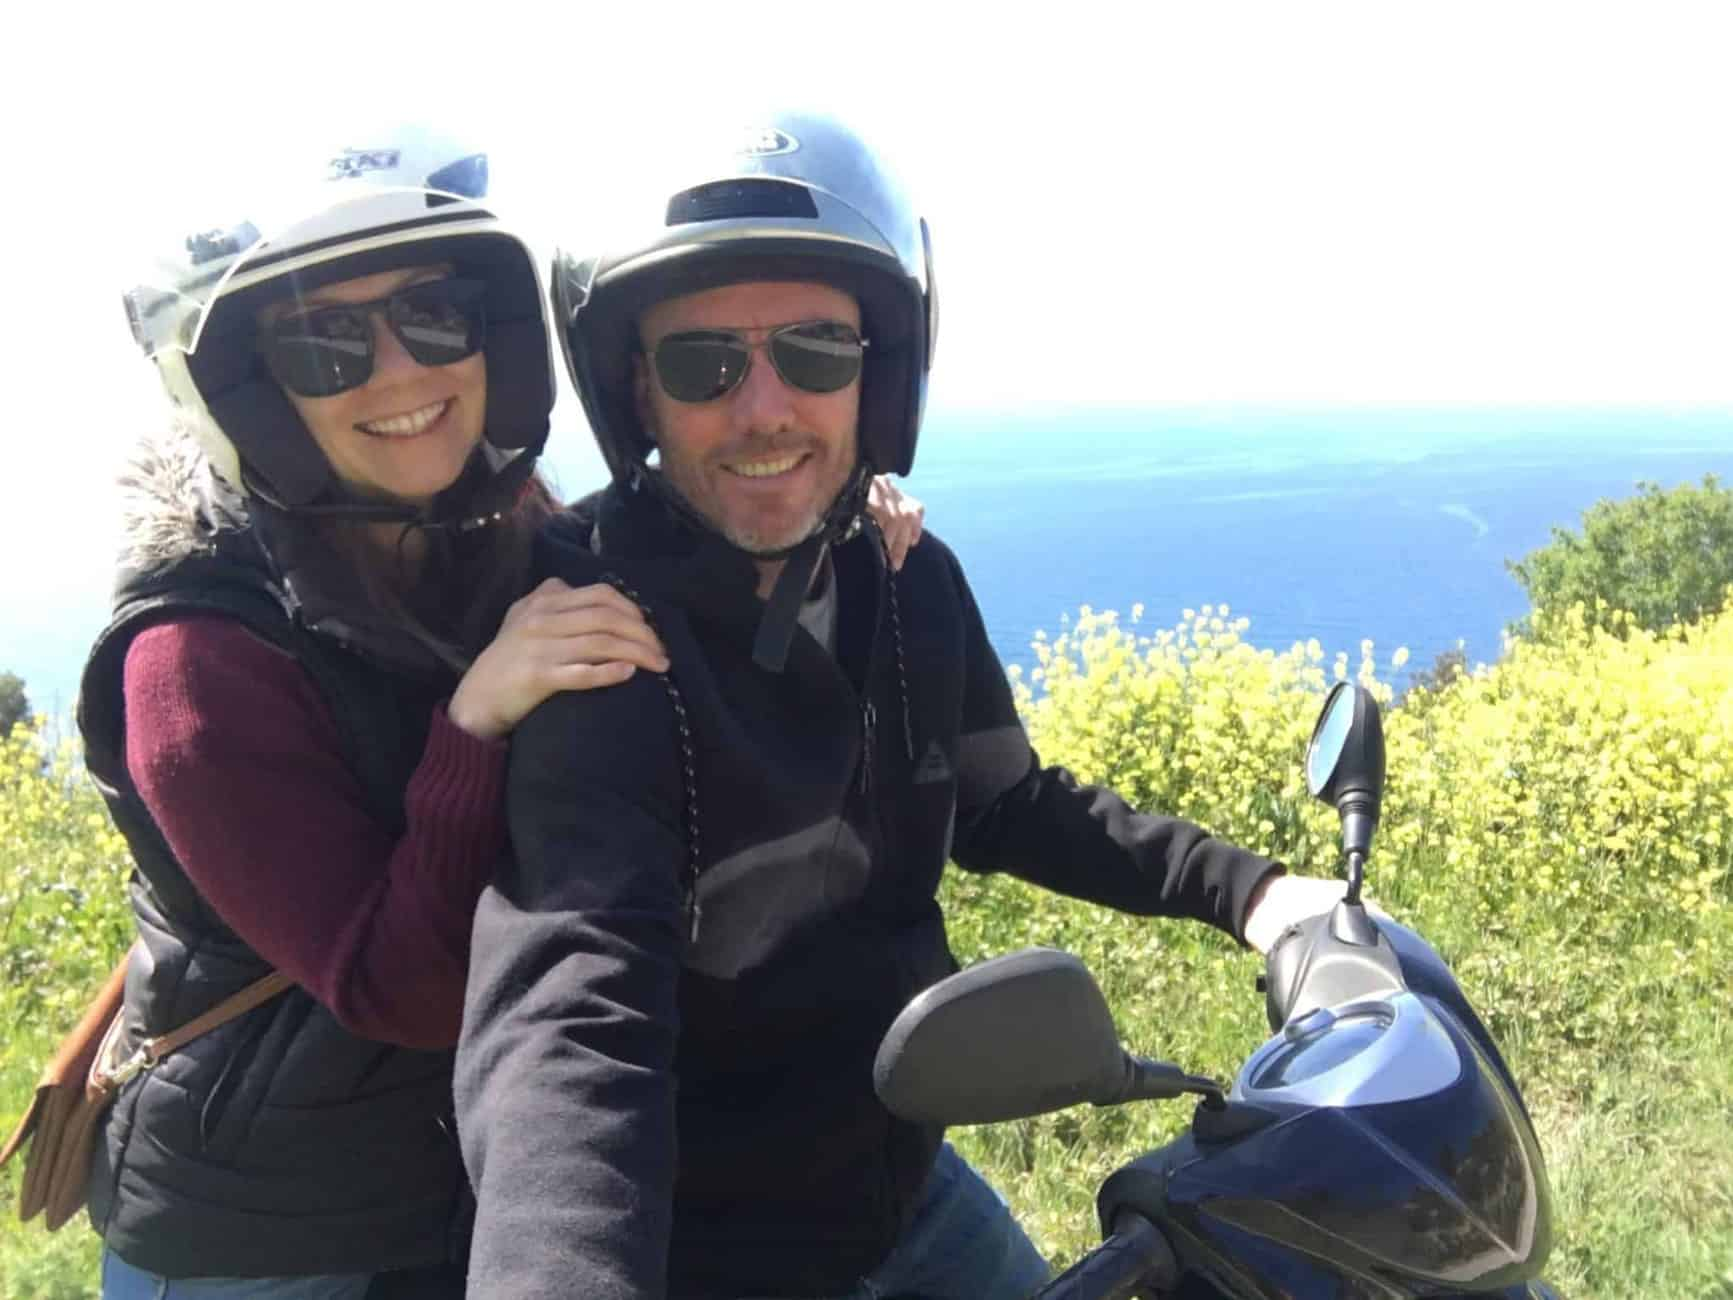 Travel around on Vis island by scooter